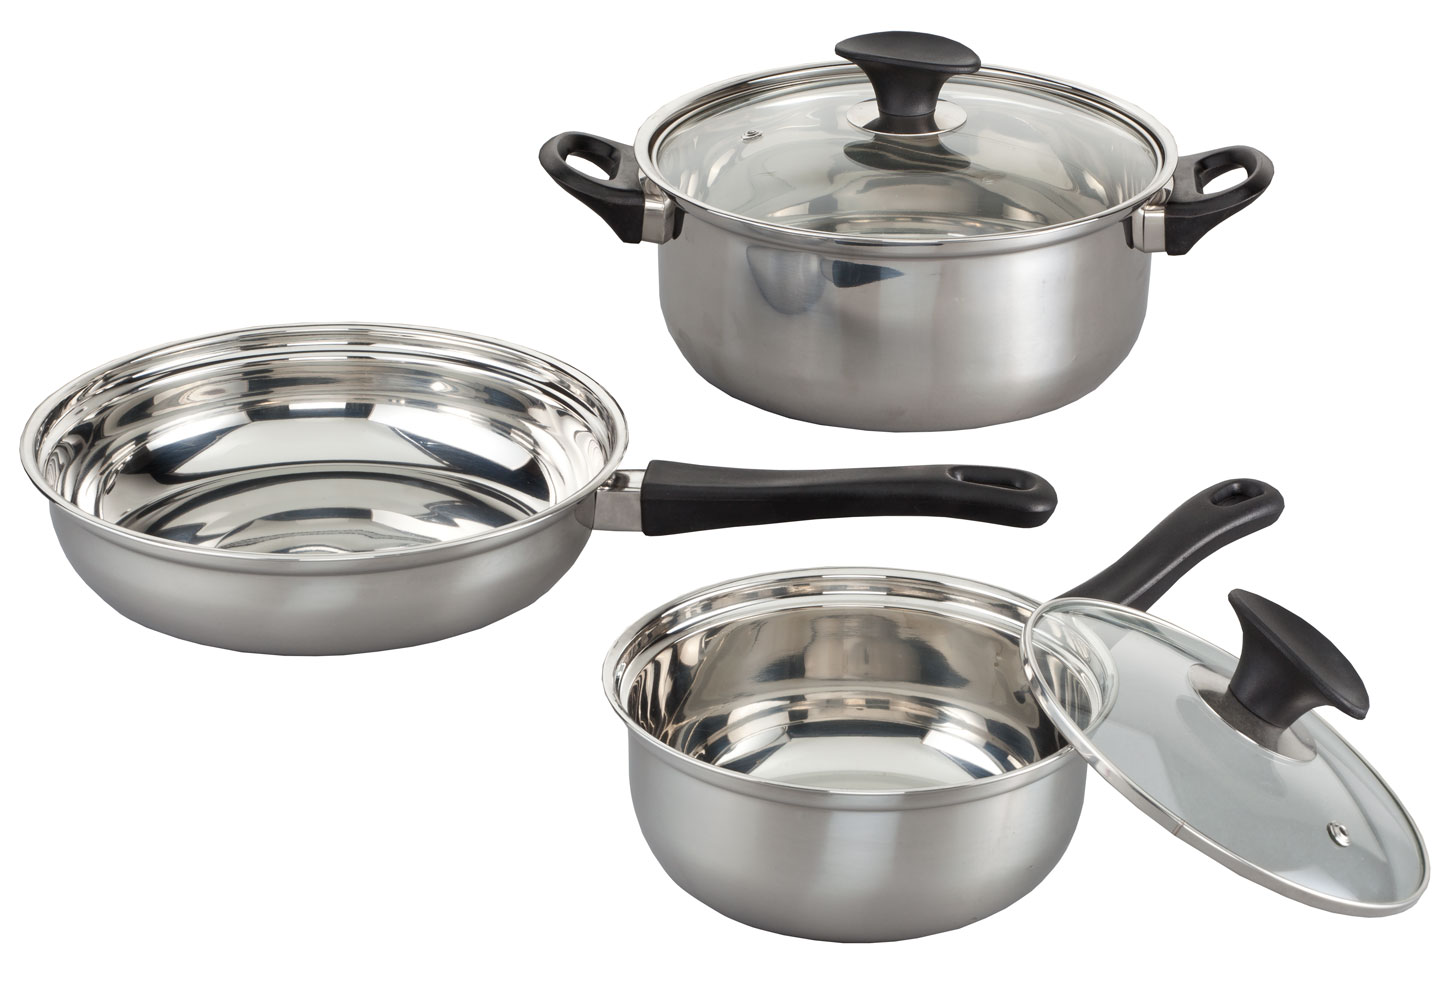 5 Pc Stainless Steel Cookware Set